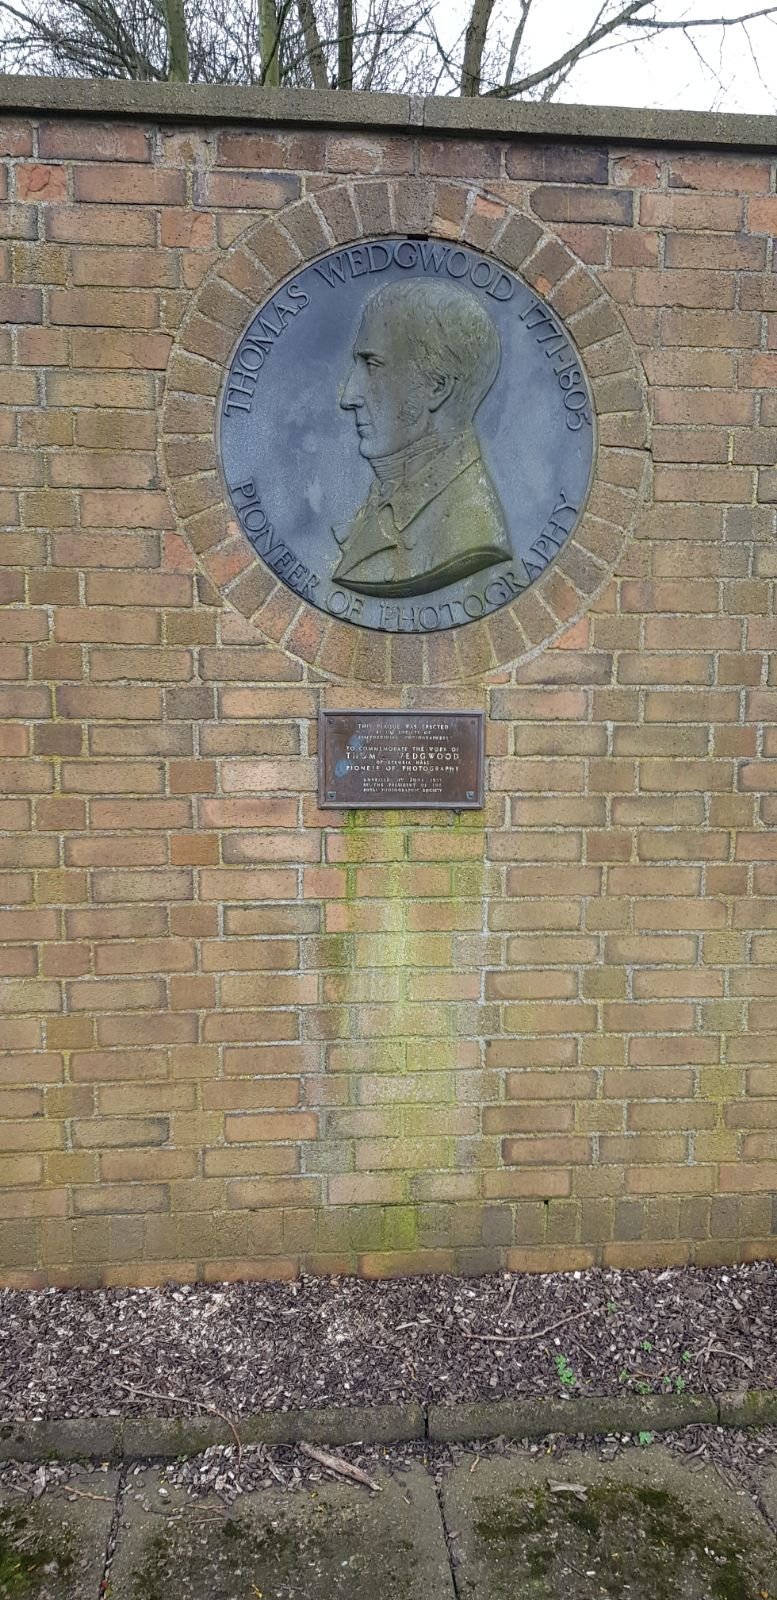 The memorial wall had become stained with moss and algae over time, we utilised the DOFF Steam Cleaning Equipment to restore it to its former glory.